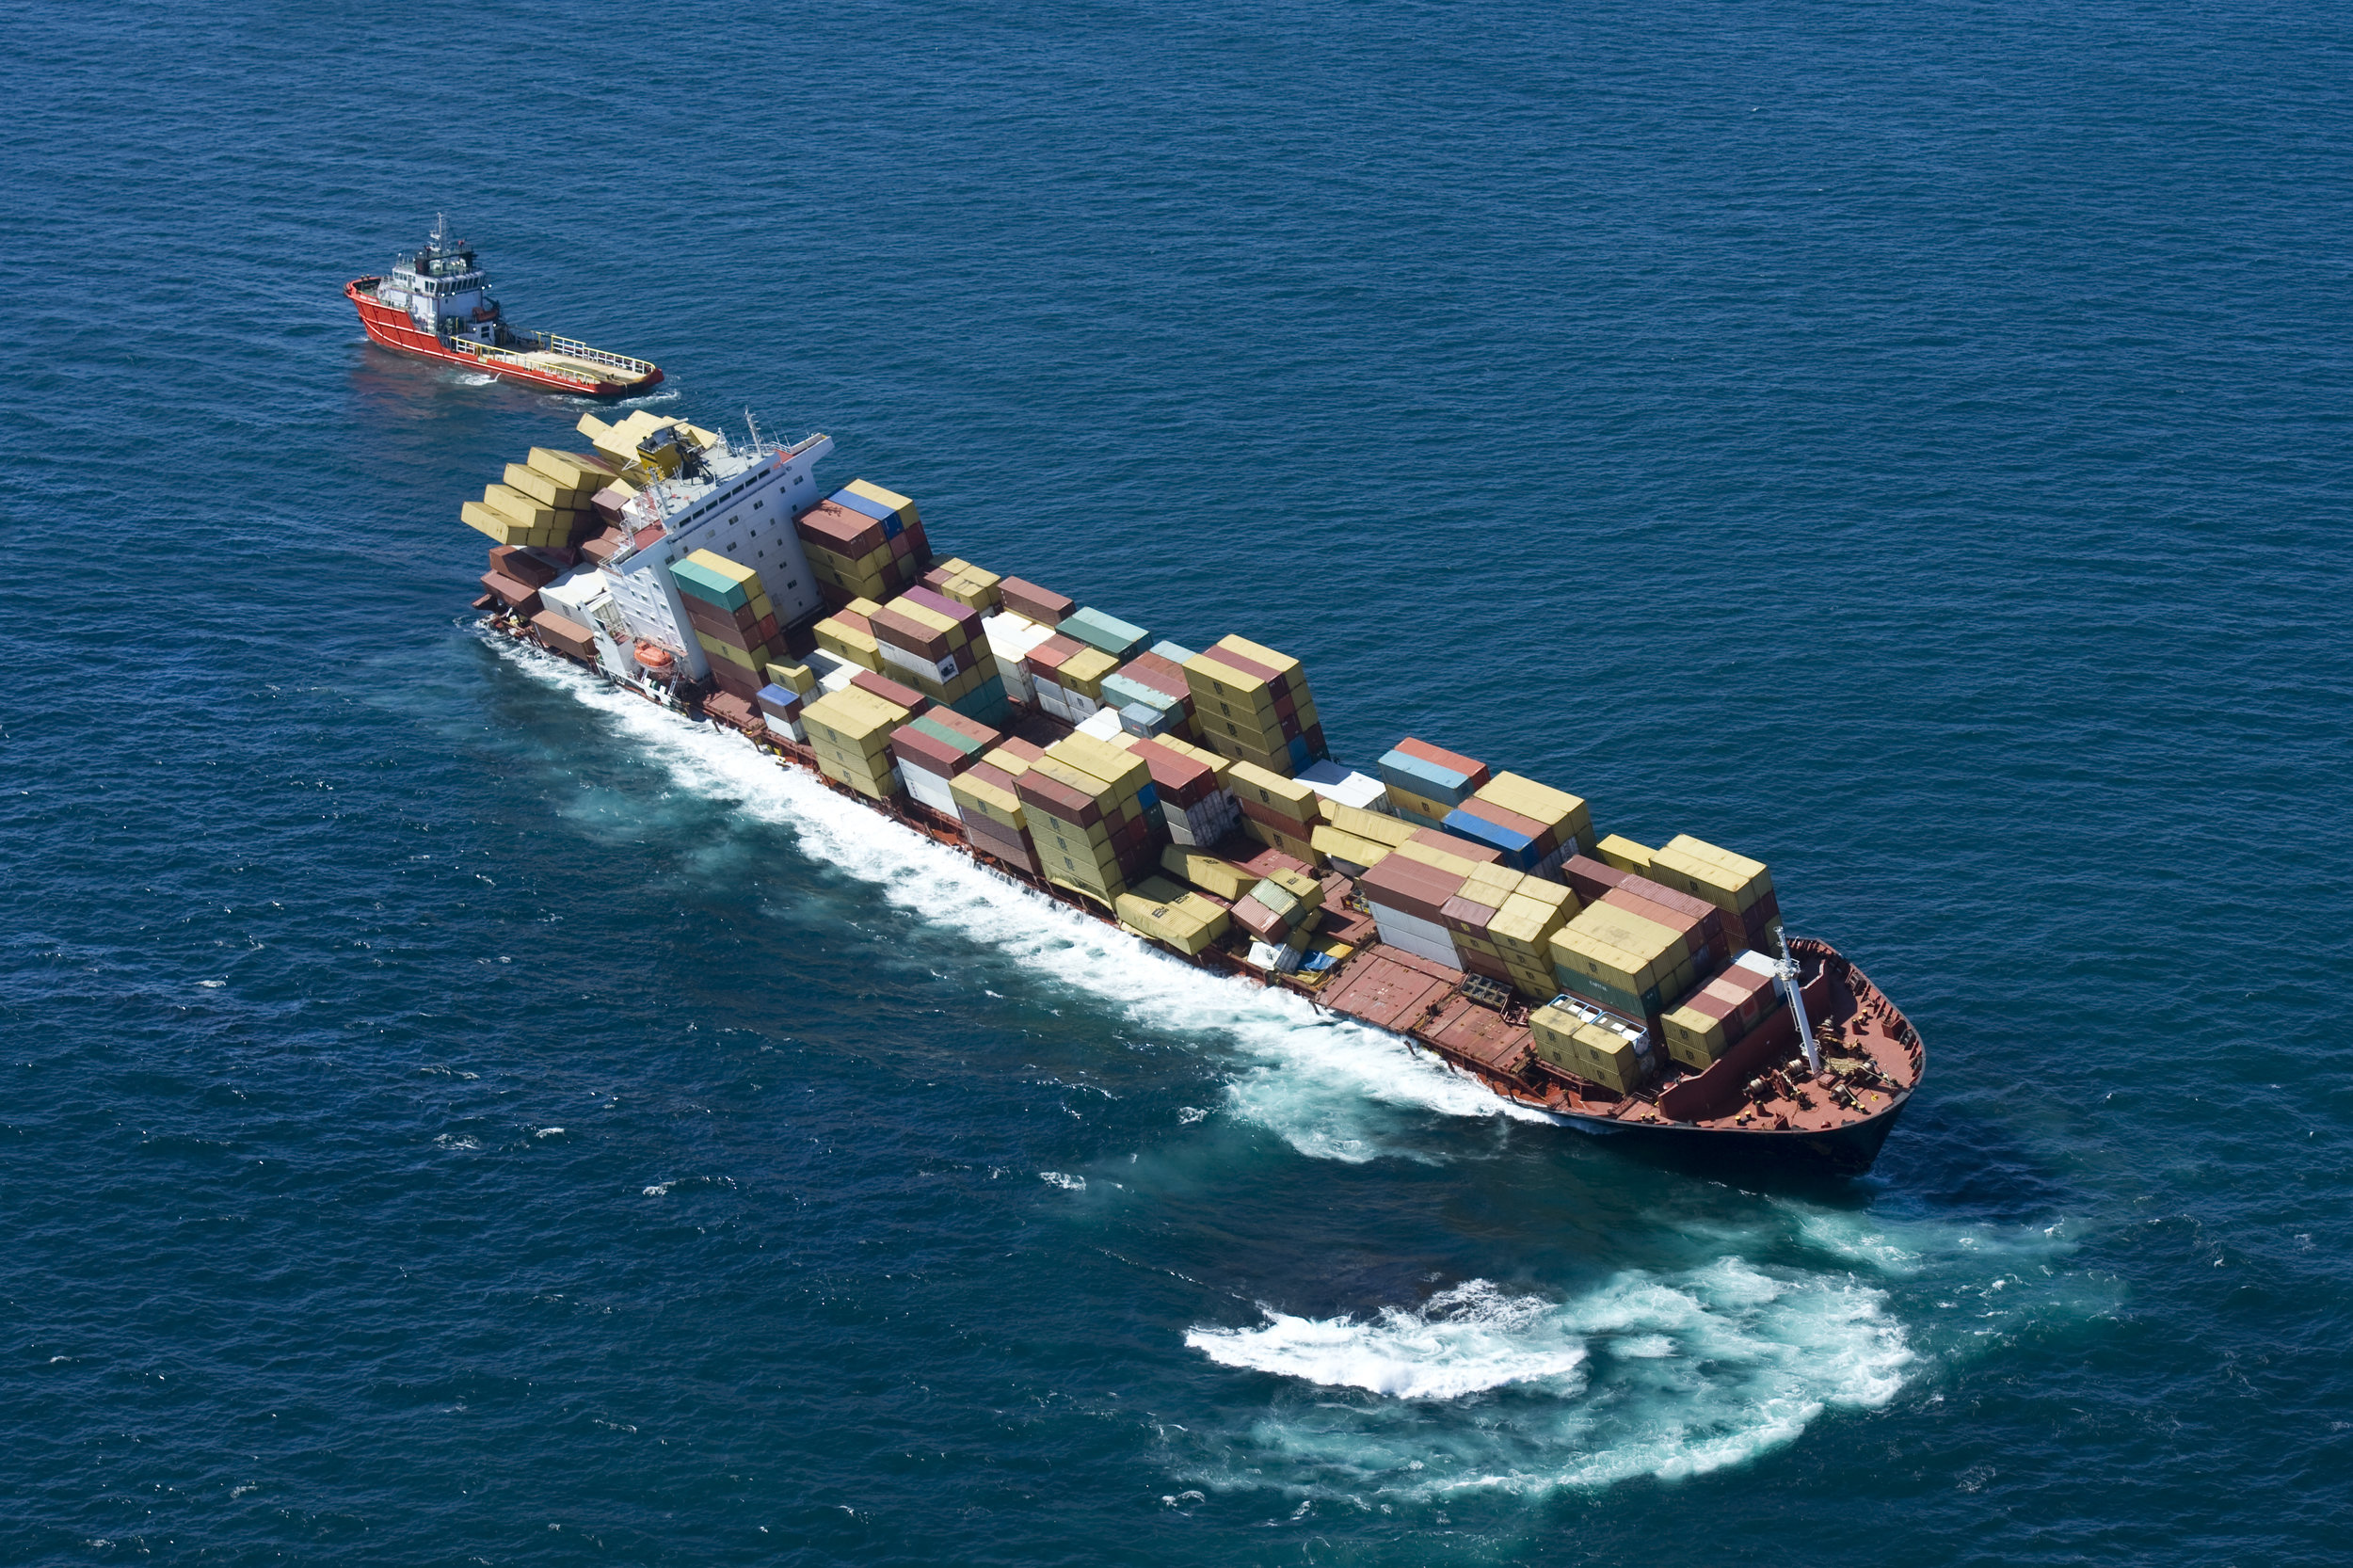 A cargo ship in trouble